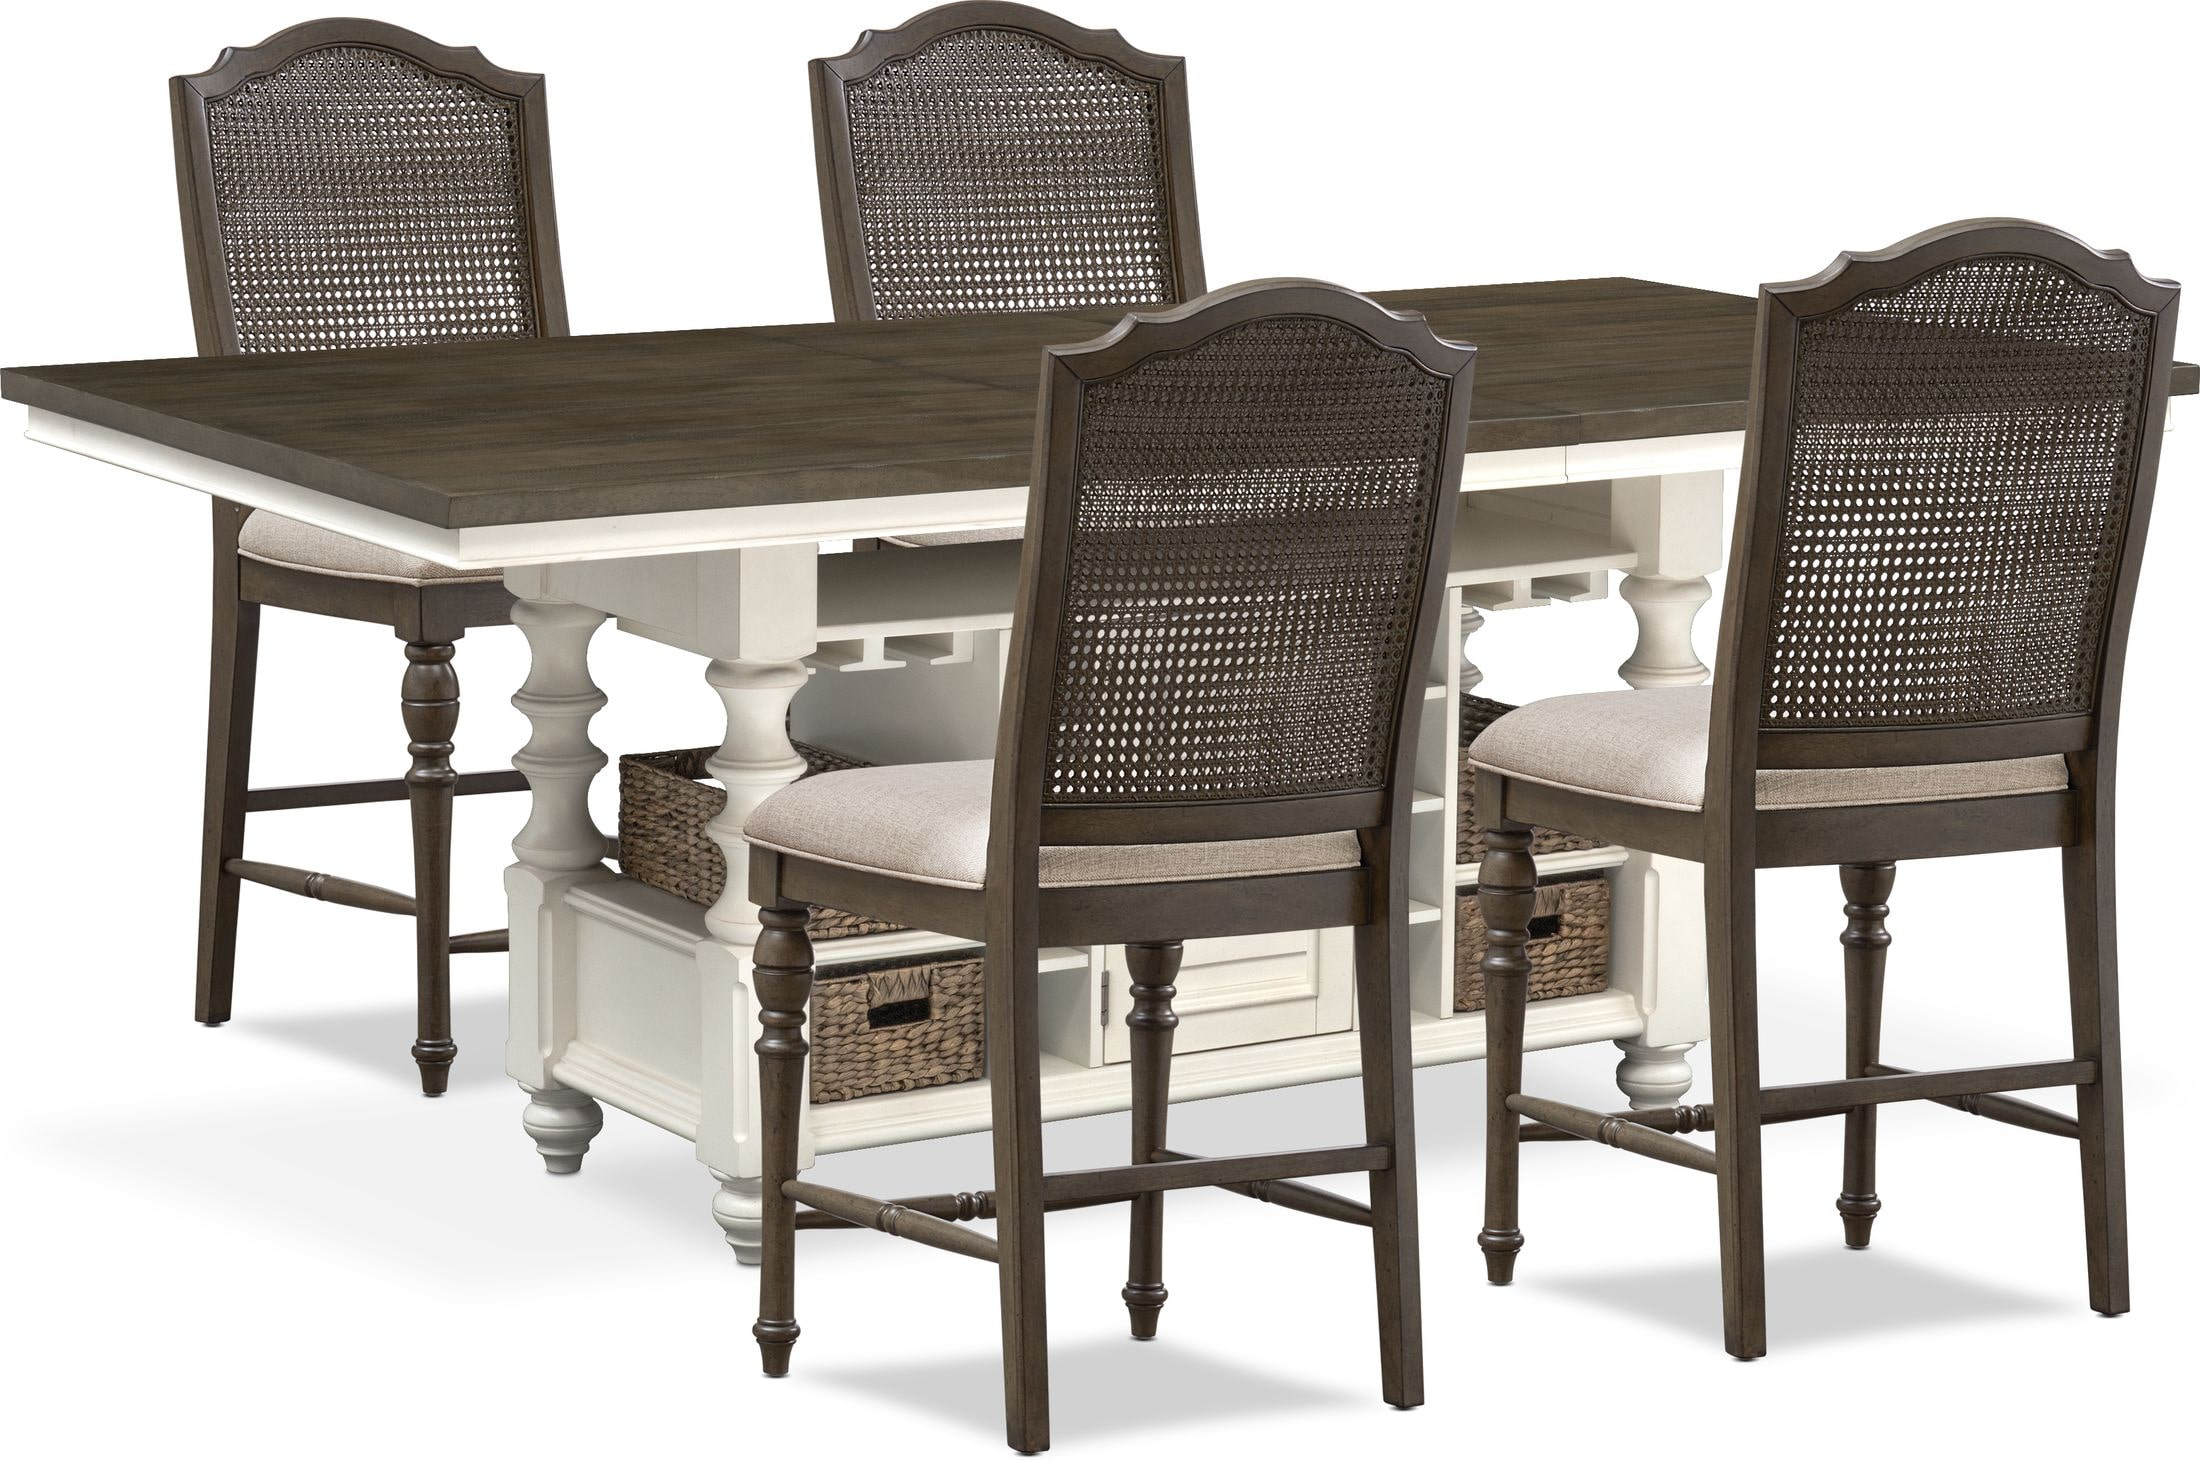 Dining Room Furniture - Charleston Counter-Height Dining Table and 4 Cane Back Stools